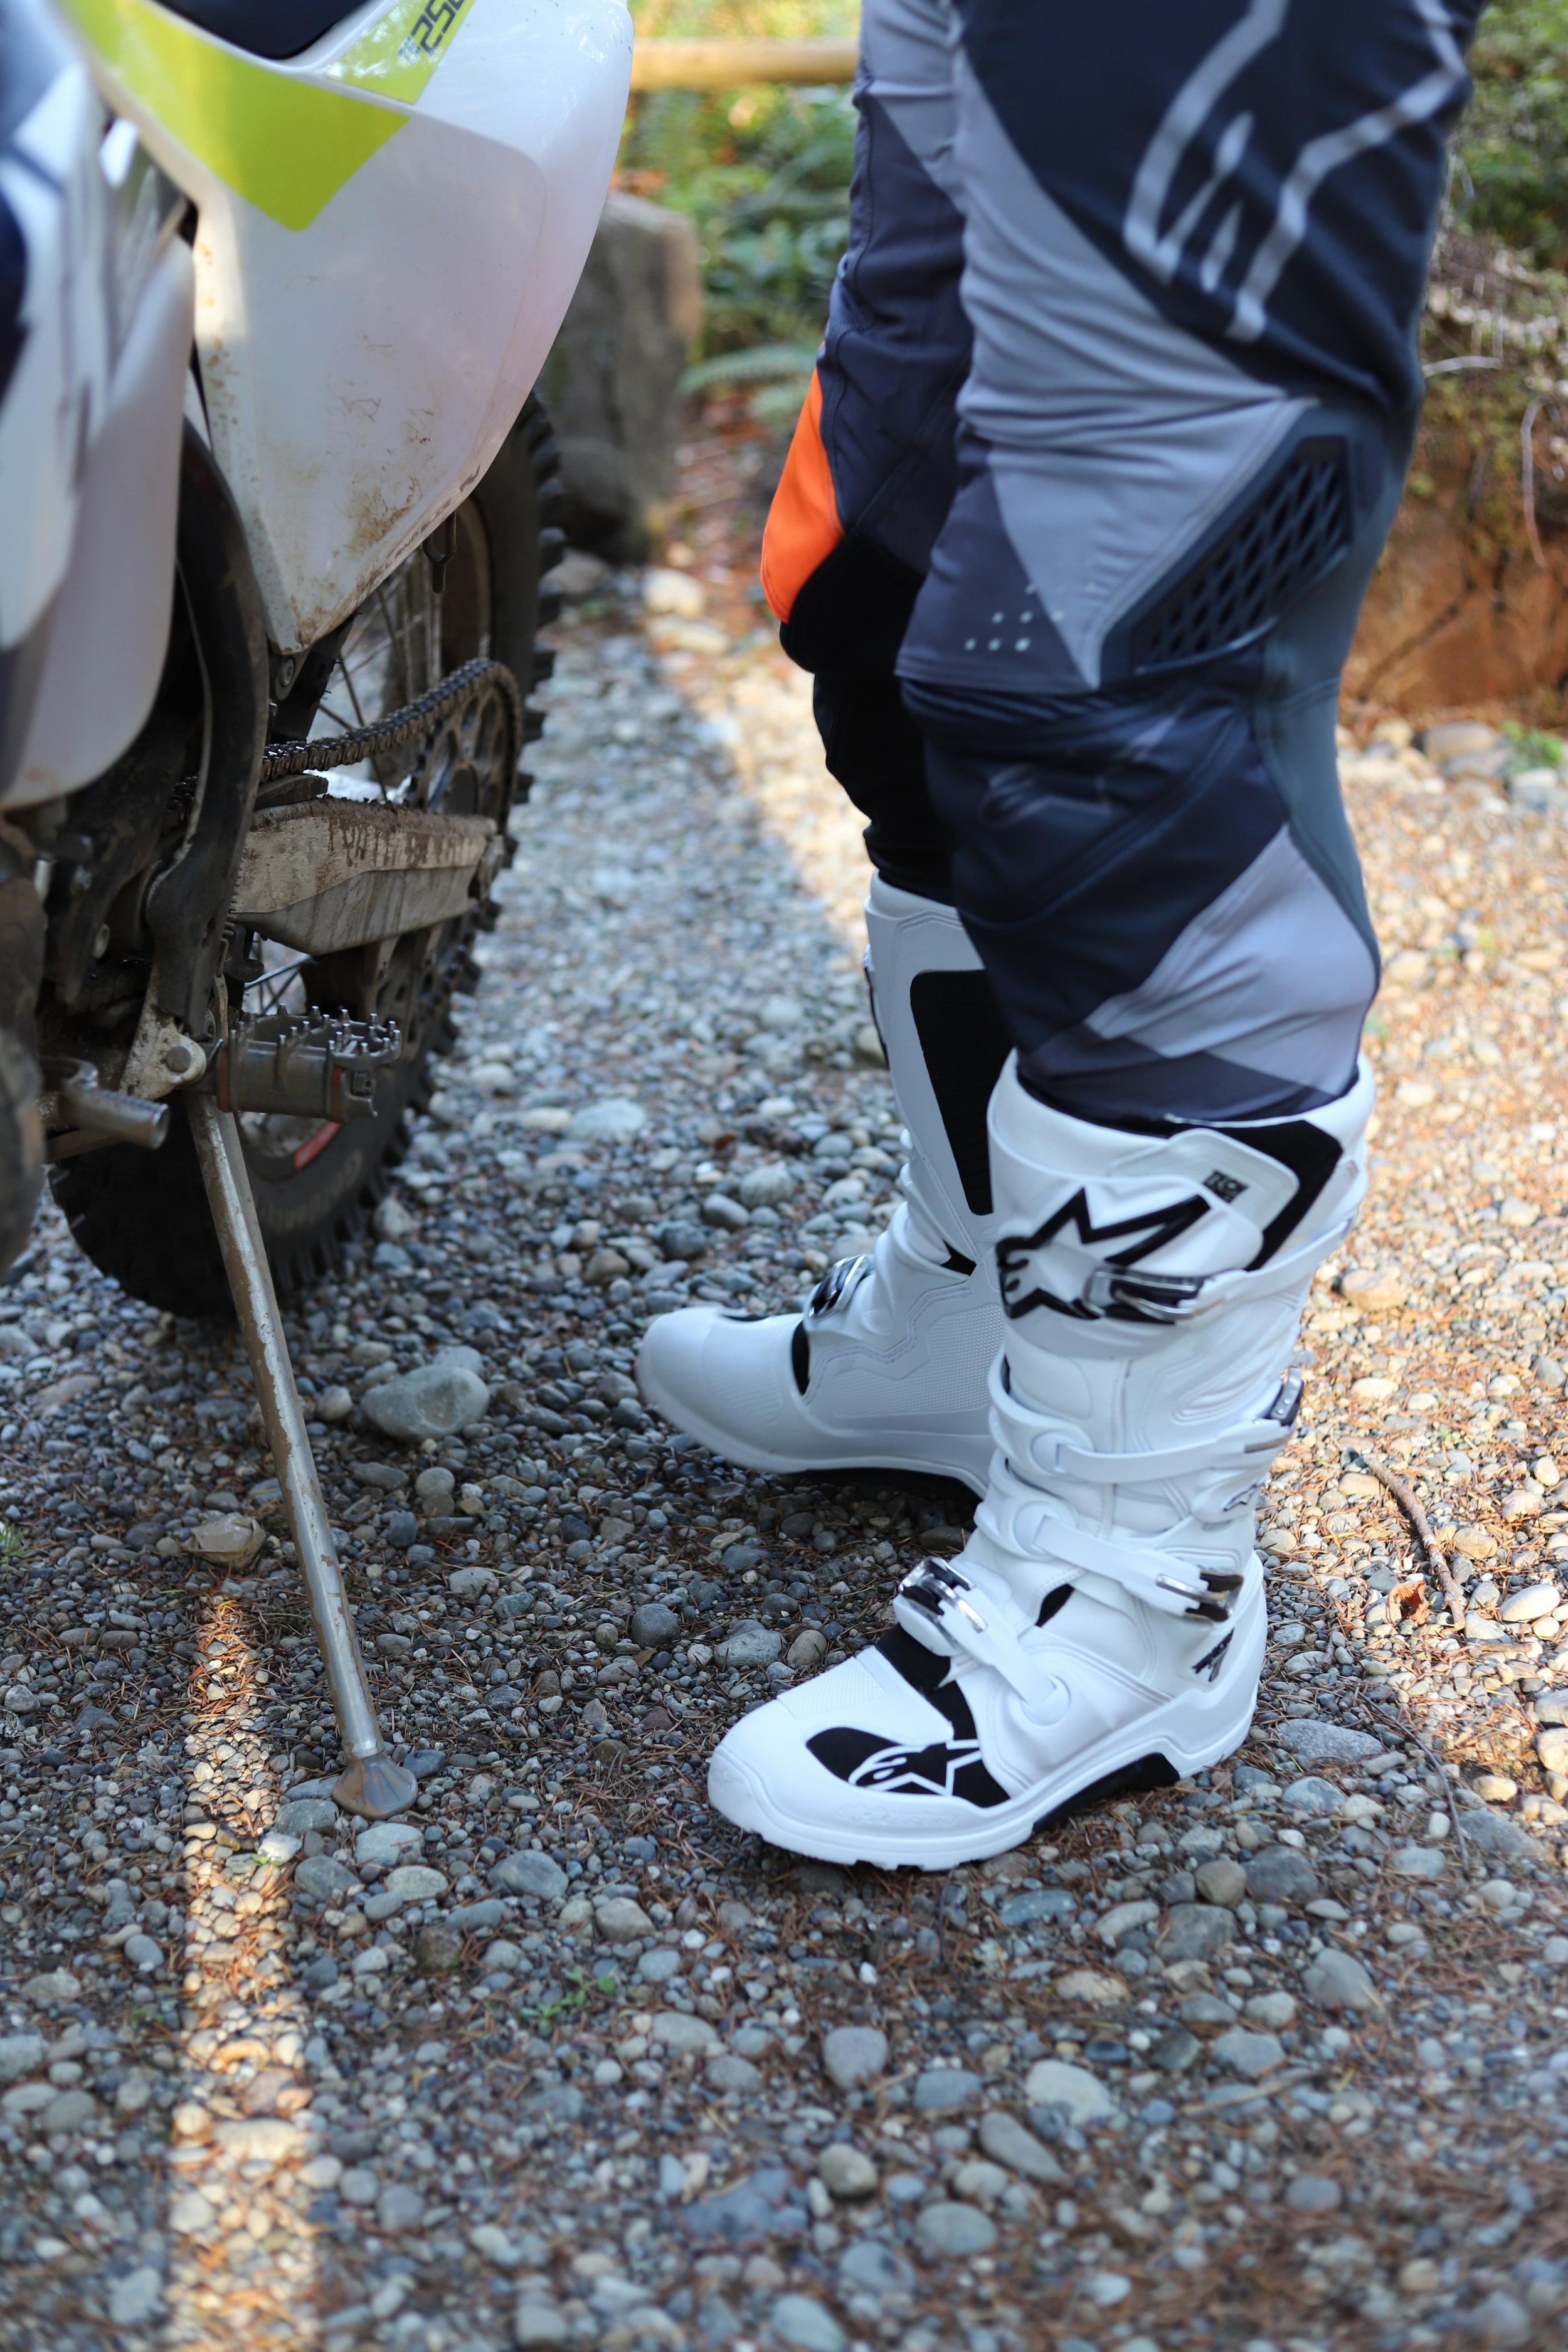 Love the buckles on the Tech 7 Enduro.